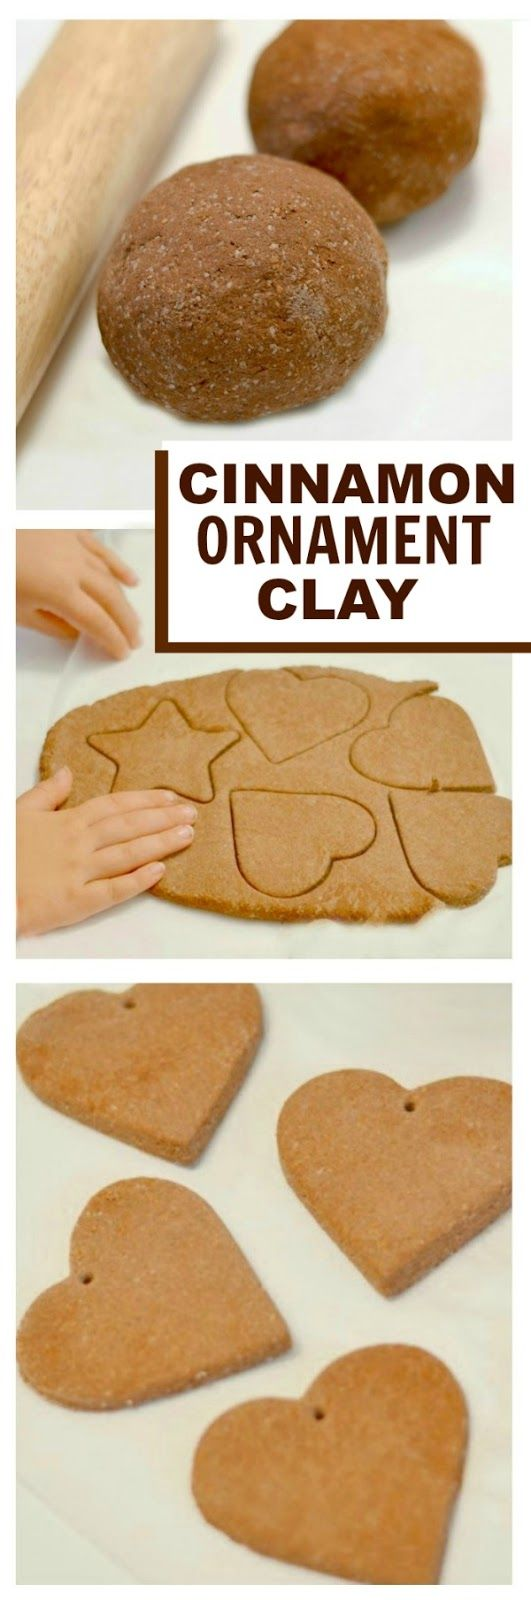 Primitive christmas ideas to make - No Cook Cinnamon Ornament Clay Takes 1 Minute To Make Smells Amazing